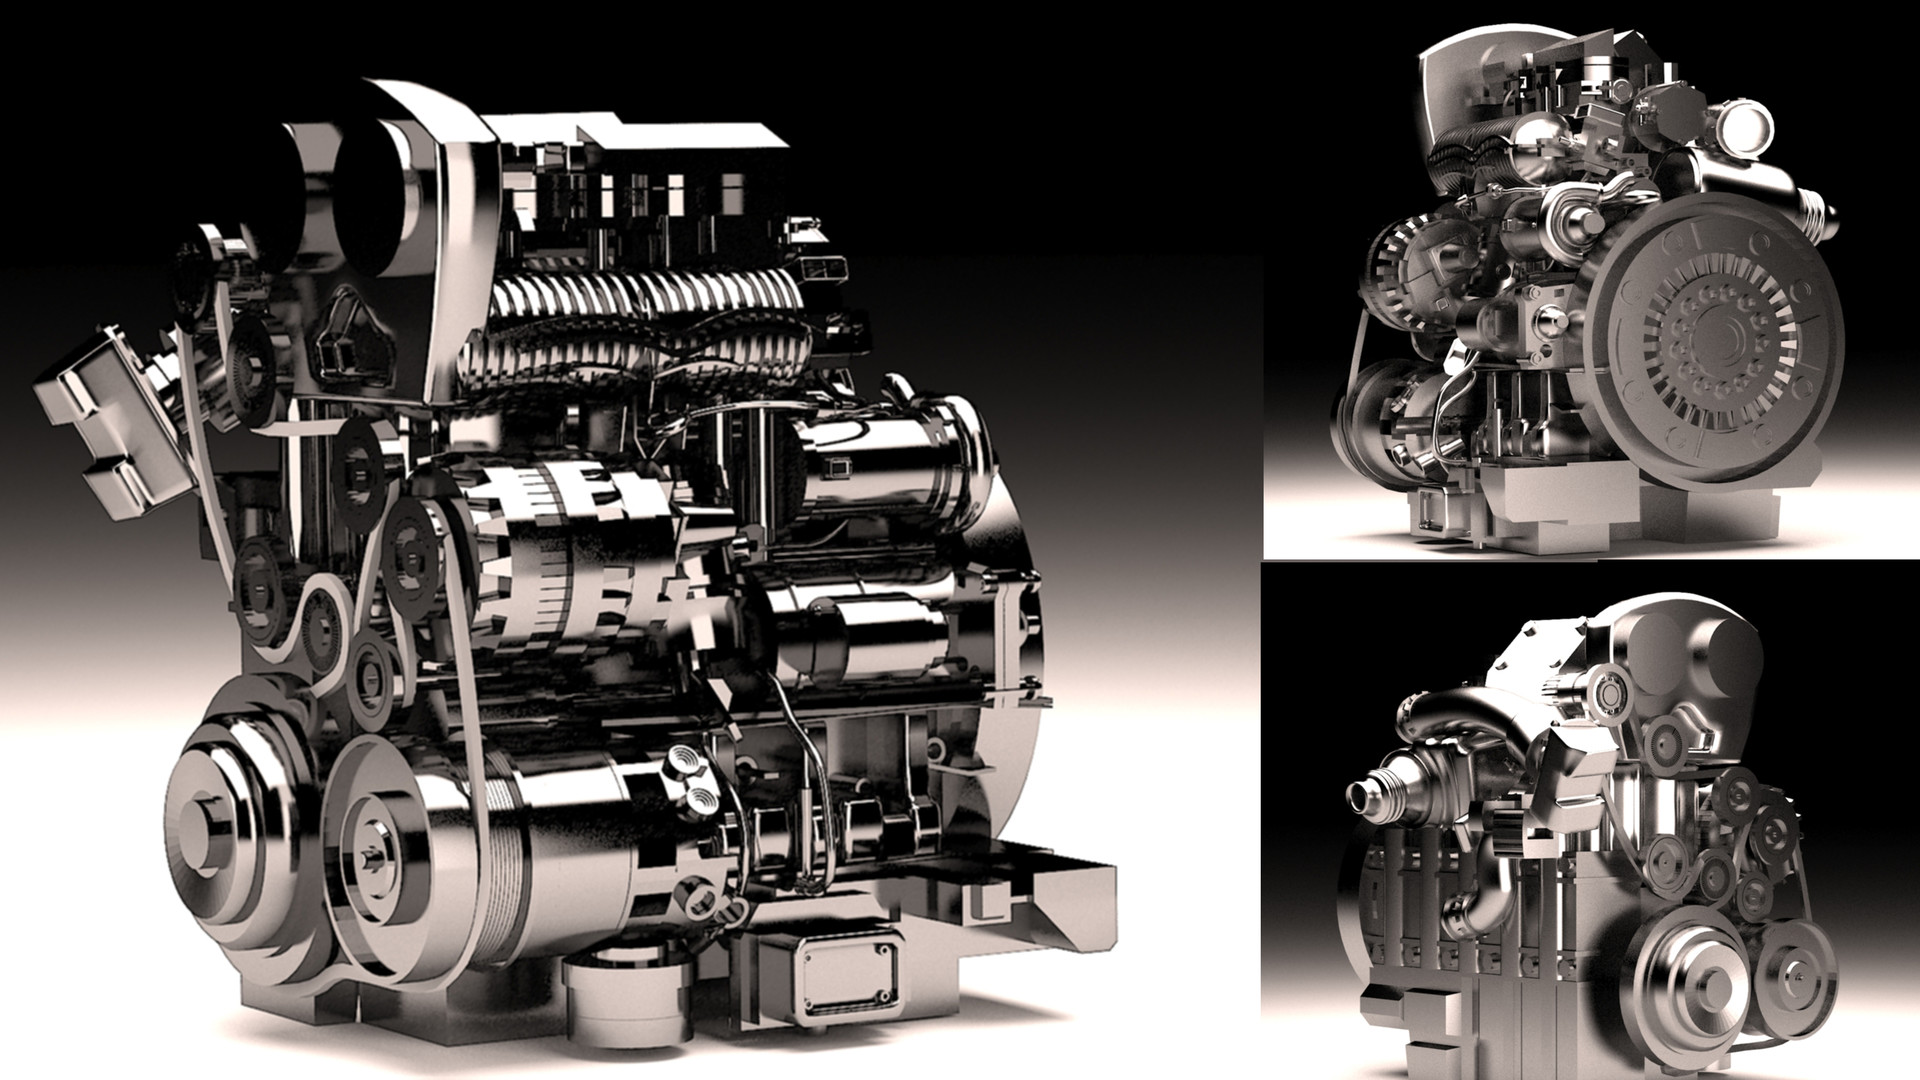 ArtStation Petrol Engine 3d Model Subhayan Dey